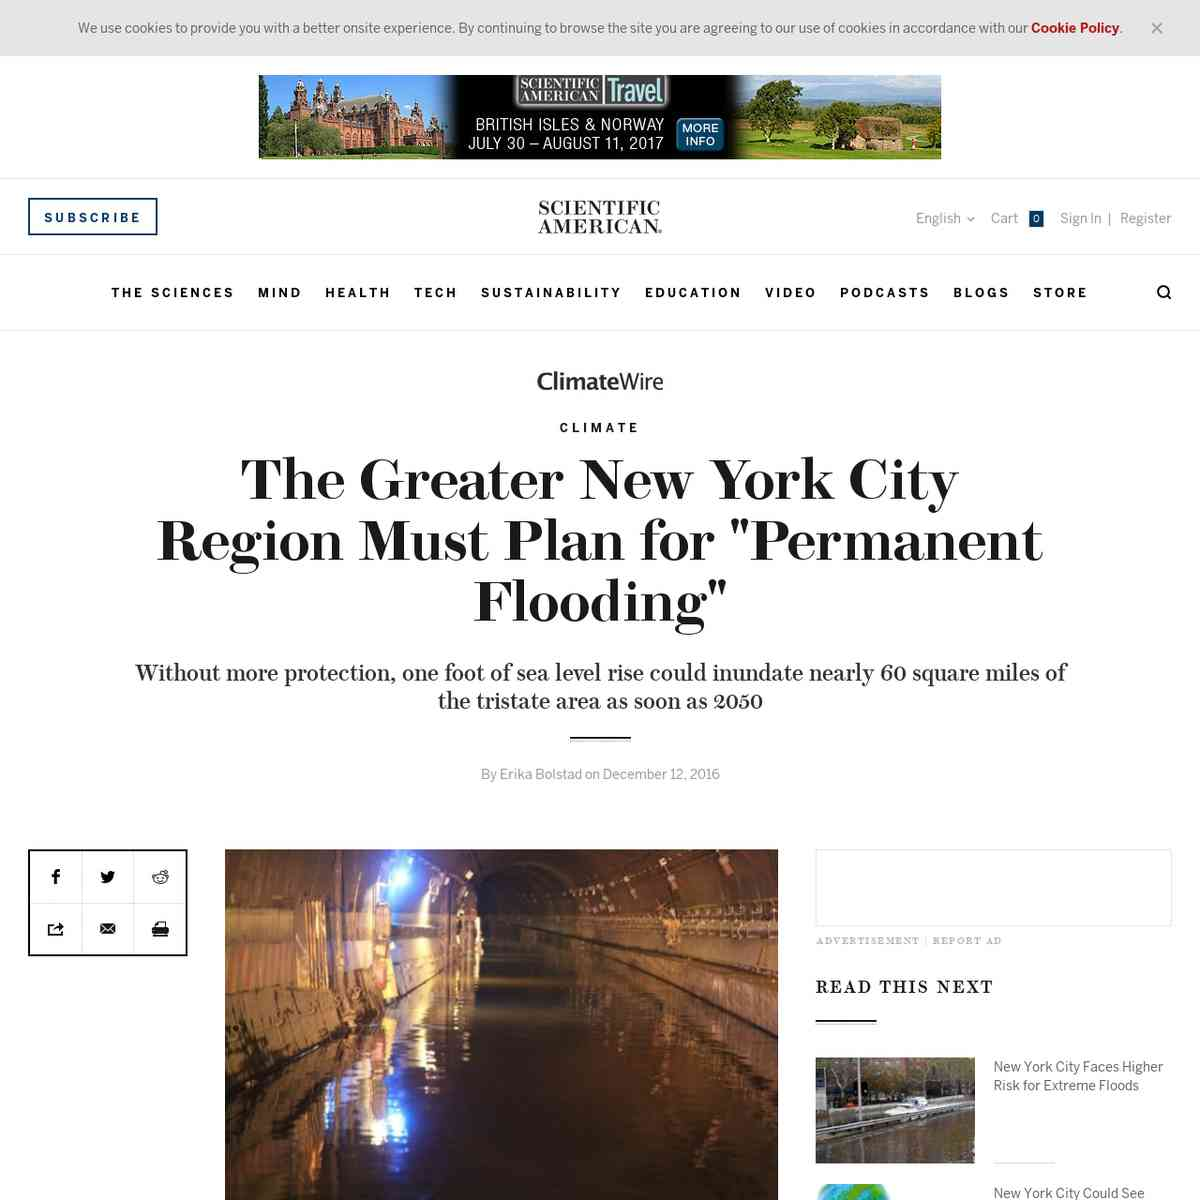 """The Greater New York City Region Must Plan for """"Permanent Flooding"""""""